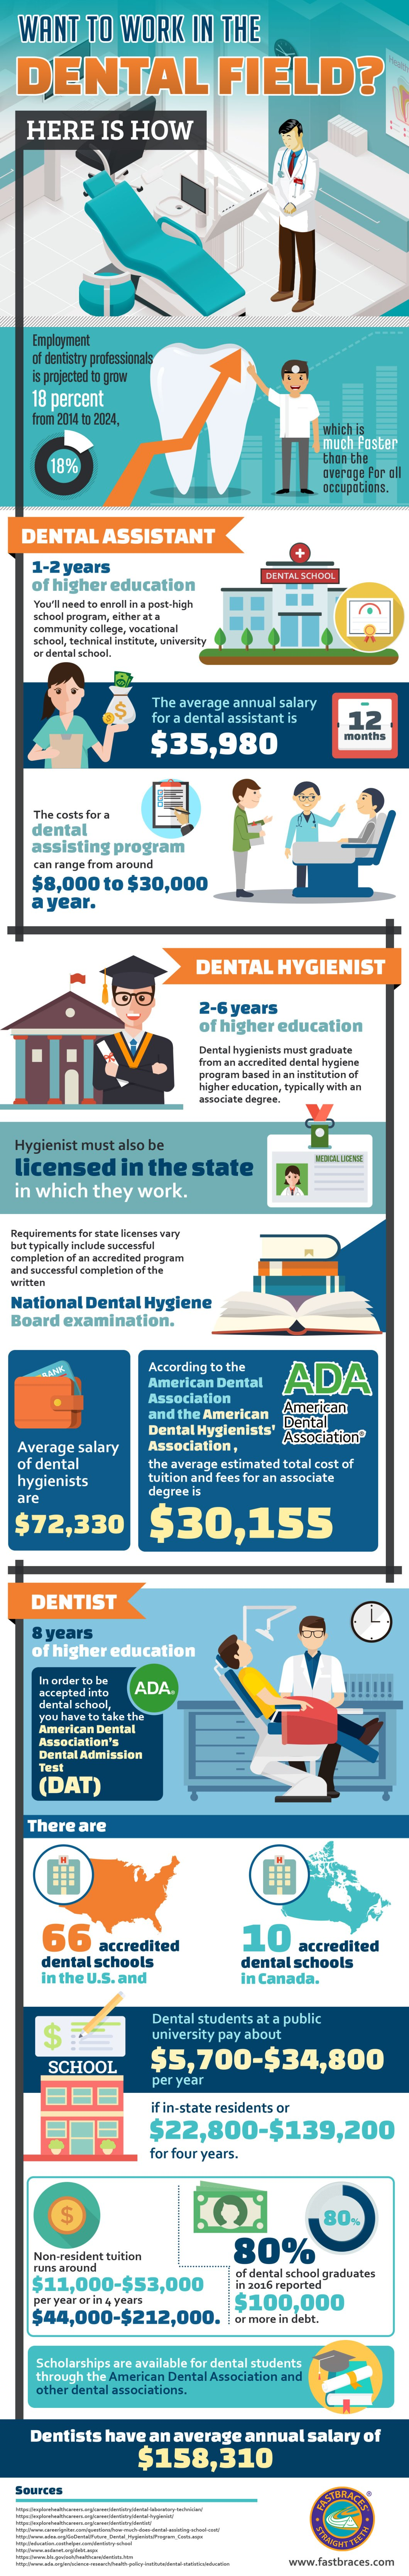 How to Pursue a Career in the Dental Field - Infographic